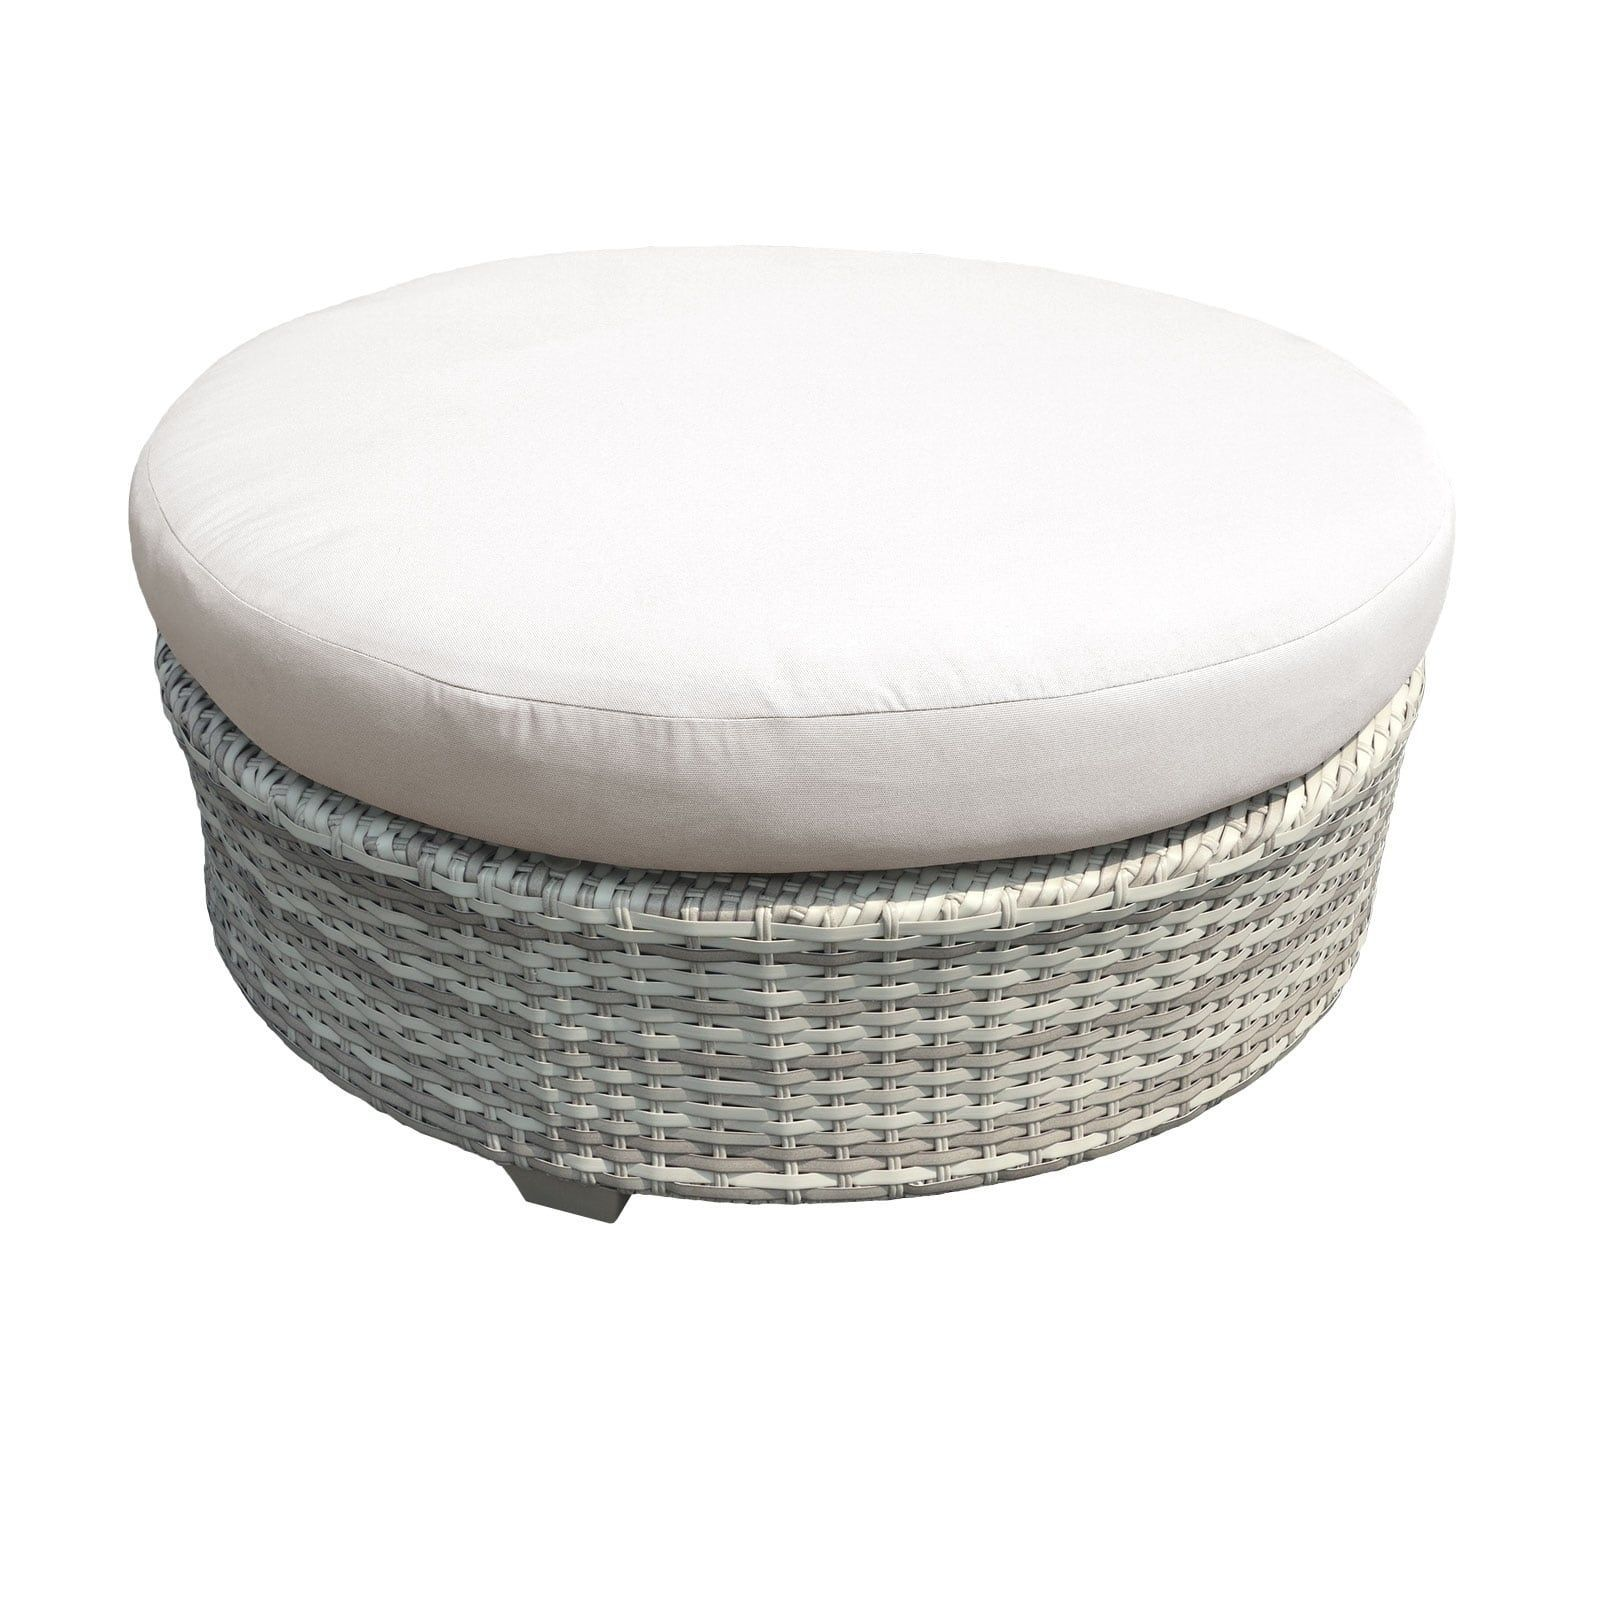 Catamaran Outdoor Patio Round Wicker Coffee Table with Cushion